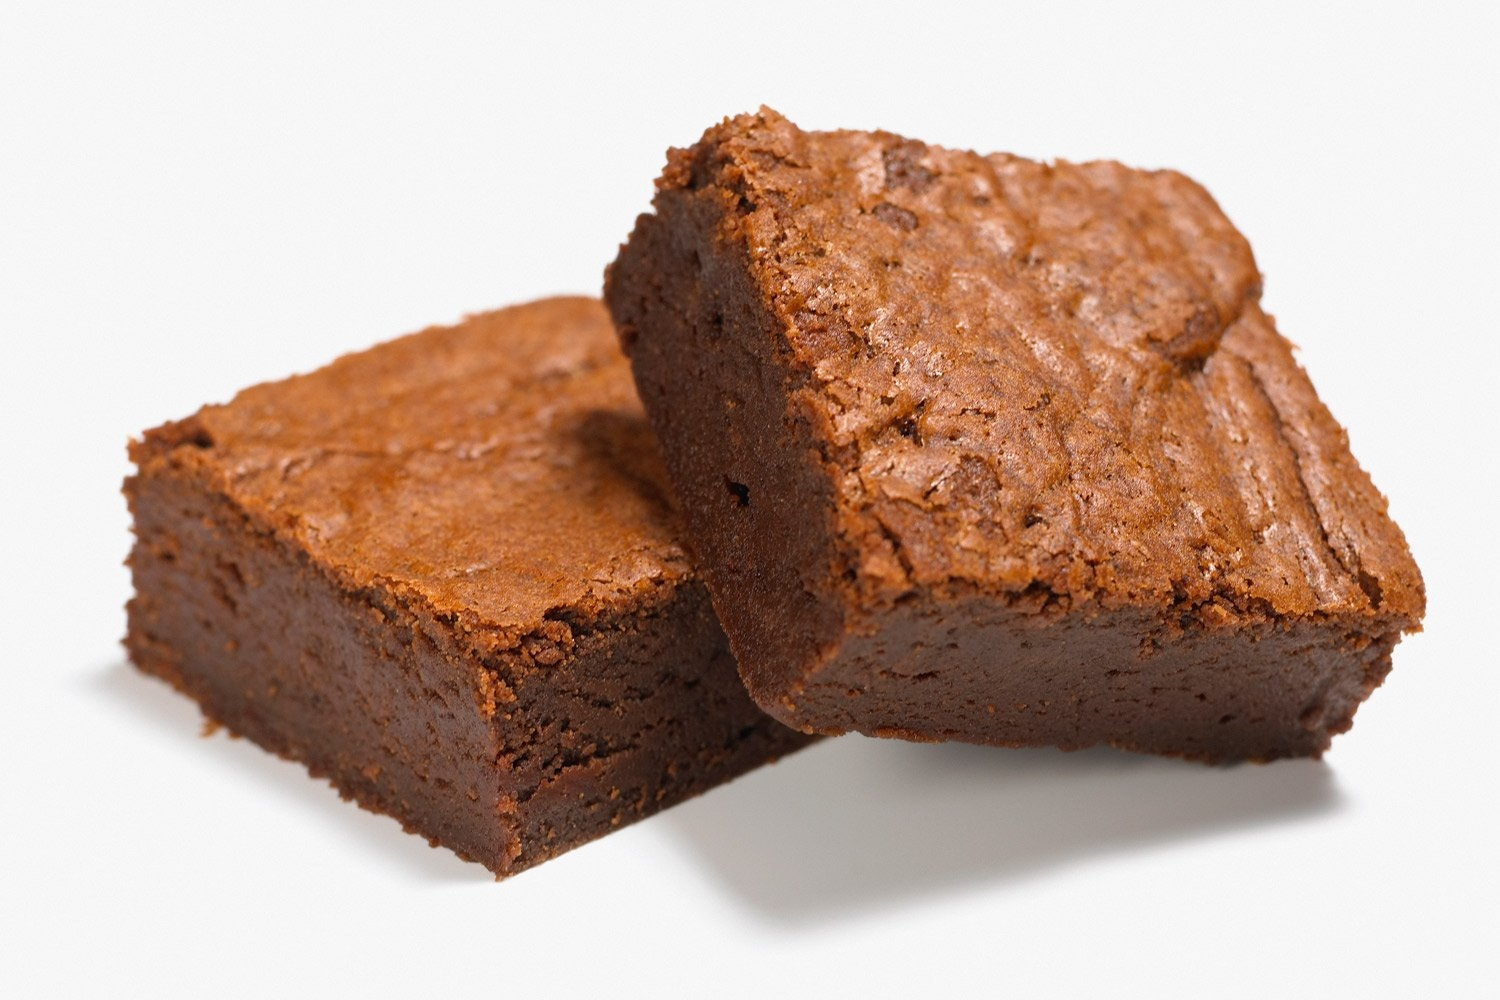 Brownie clipart Best of Pot Brownies for Prom Dress Could Get Teen.